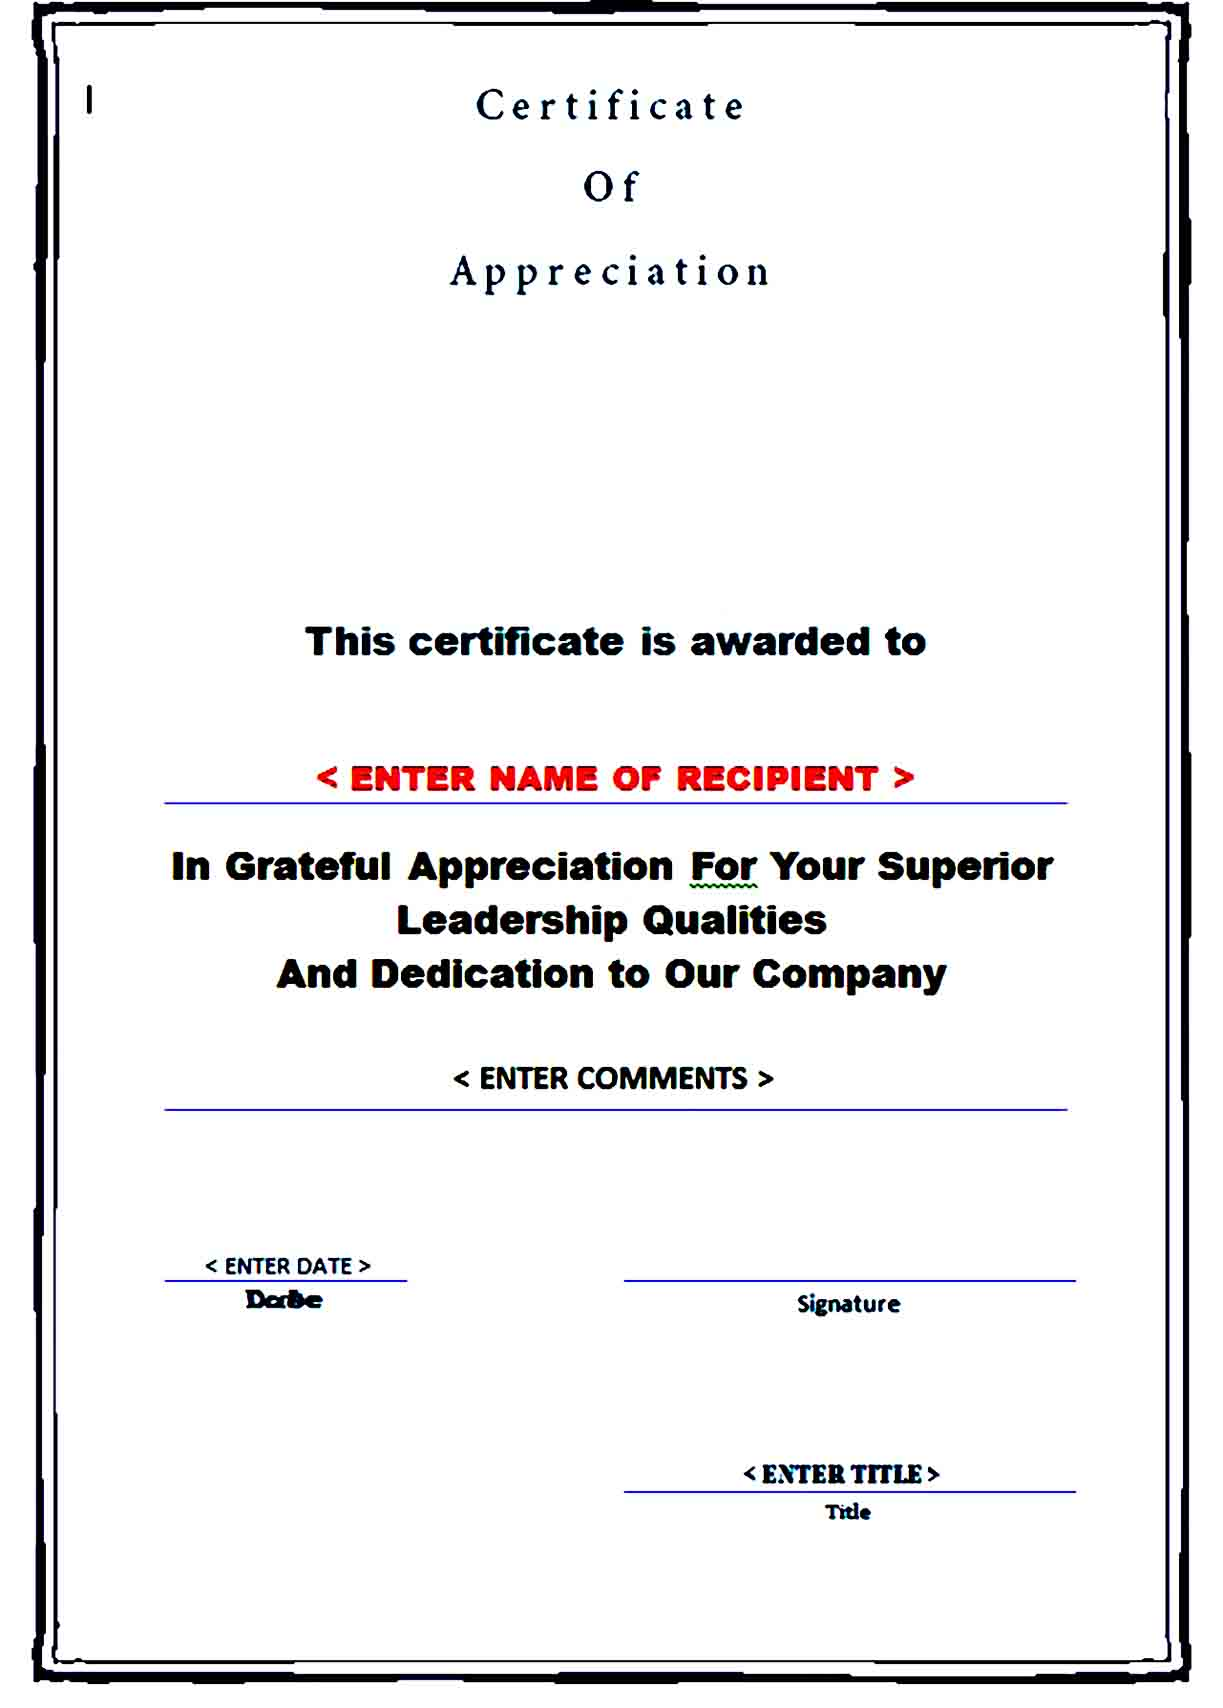 Certificate of Appreciation 12